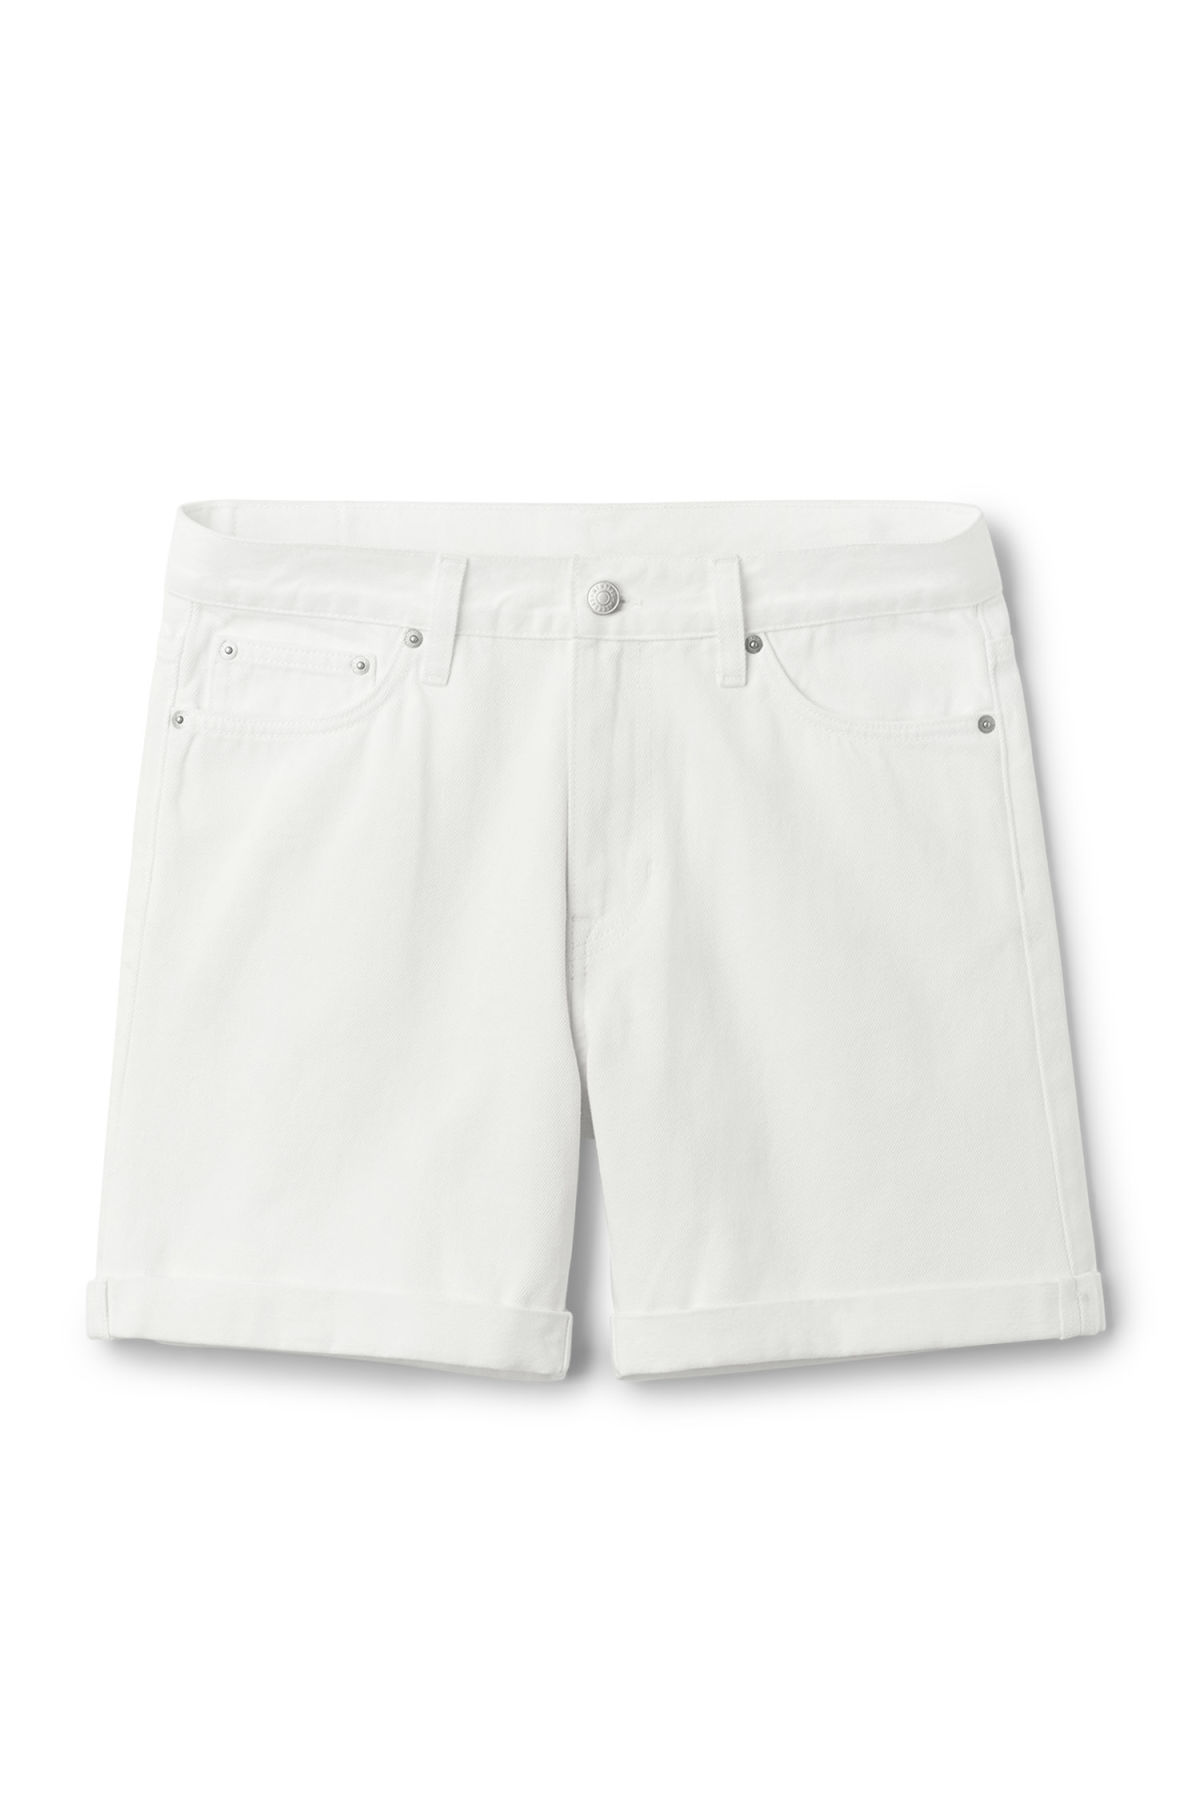 Front image of Weekday vacant shorts white in white